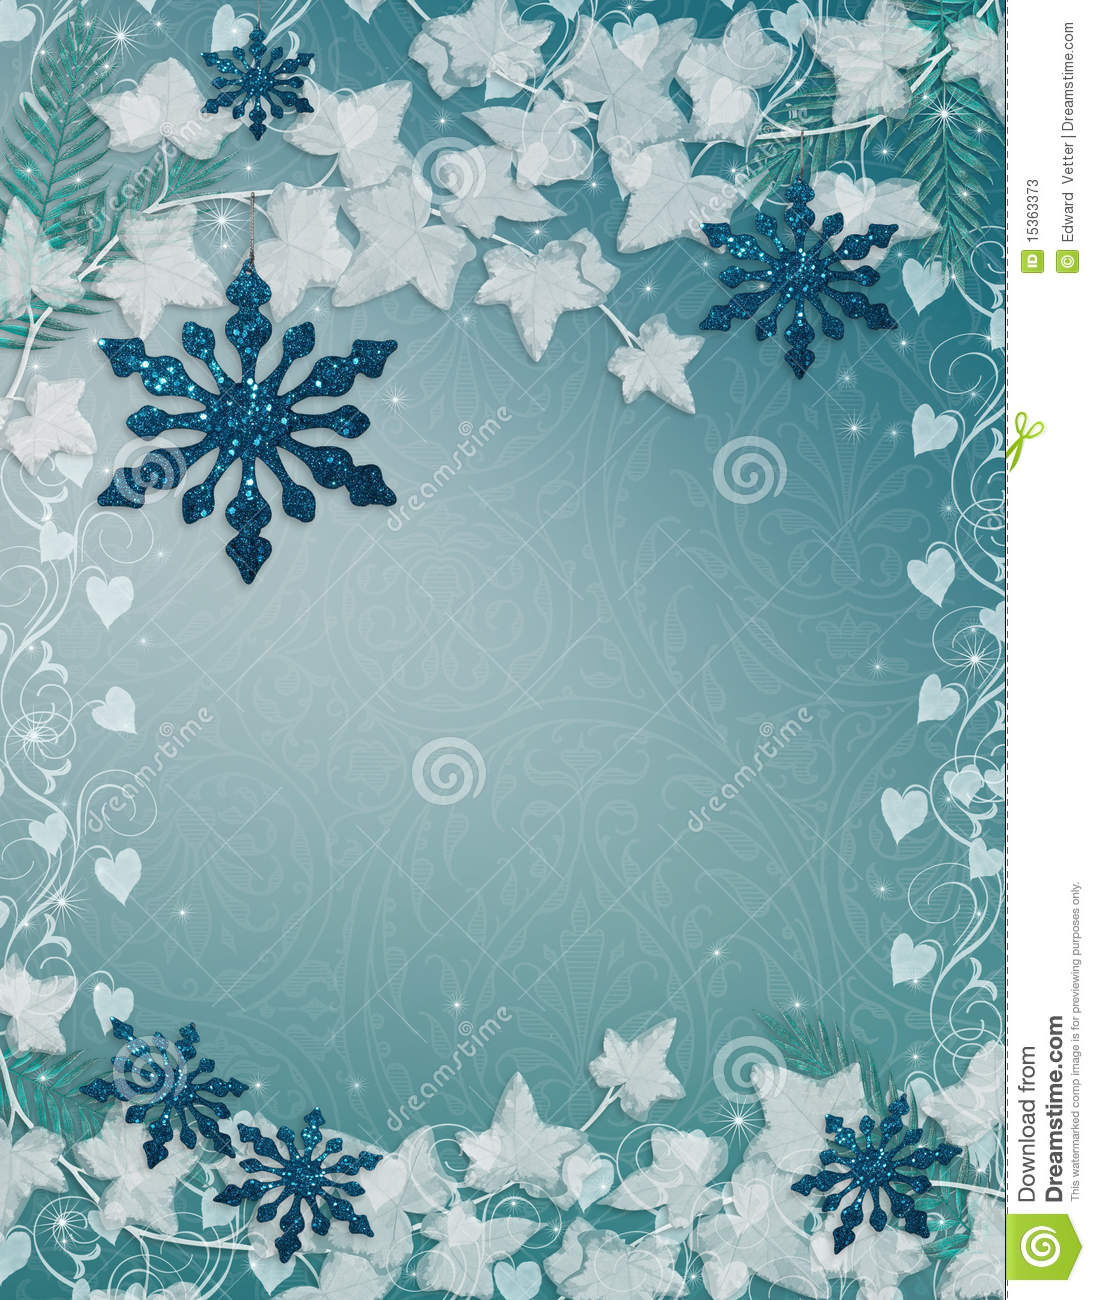 snowflakes background blue stock illustration illustration of party